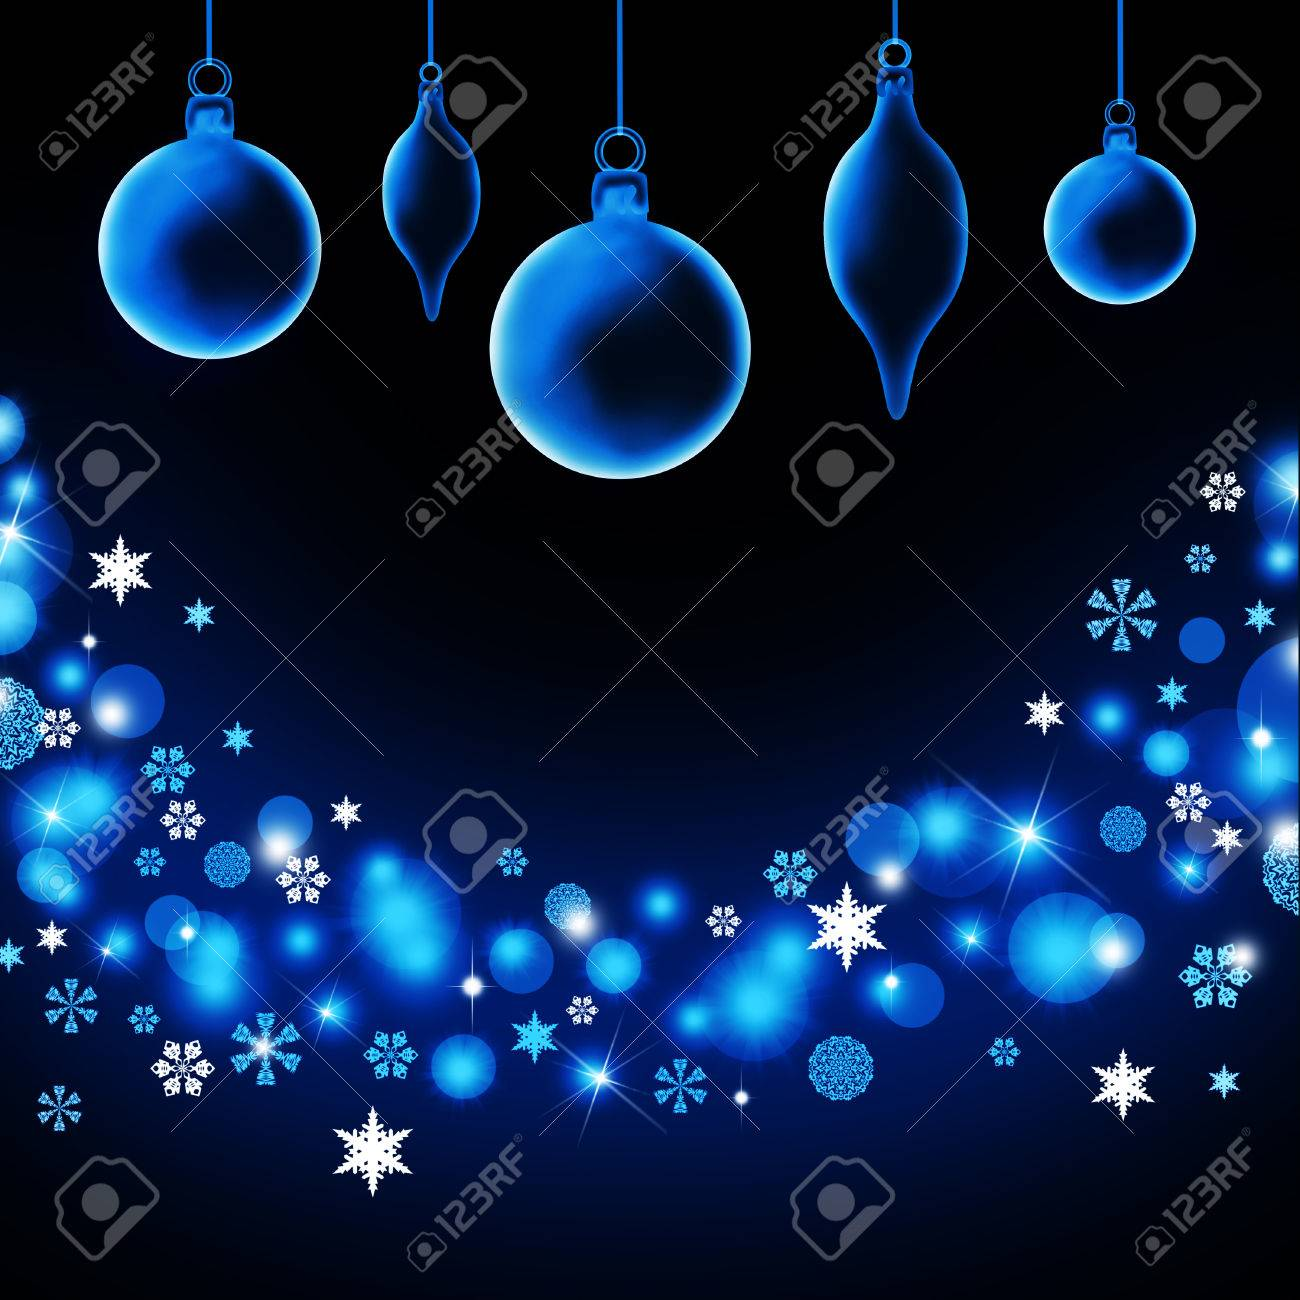 Transparent Christmas Decorations Balls And Icicles On A Blue